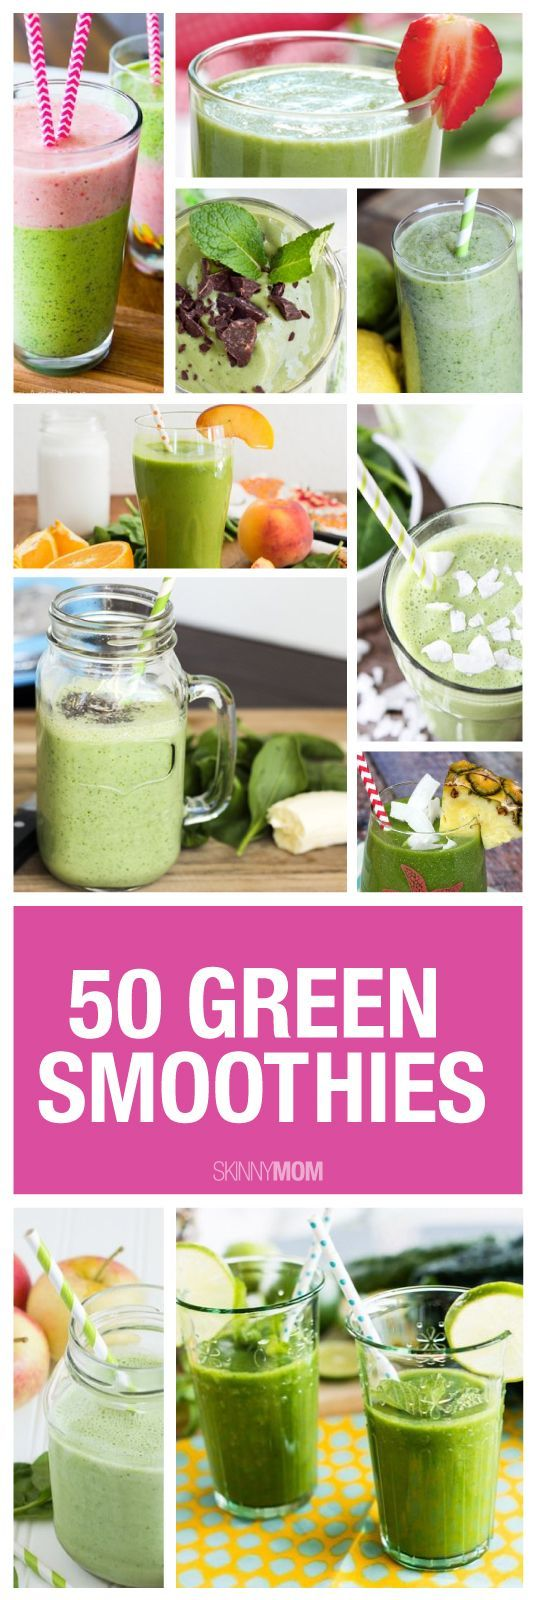 50 Green Smoothies - Whether it's breakfast or an afternoon snack, a healthy smoothie is a great choice. They taste great and are great for you. If you have a hard time getting in your fruits and veggies, green smoothies are the way to go!